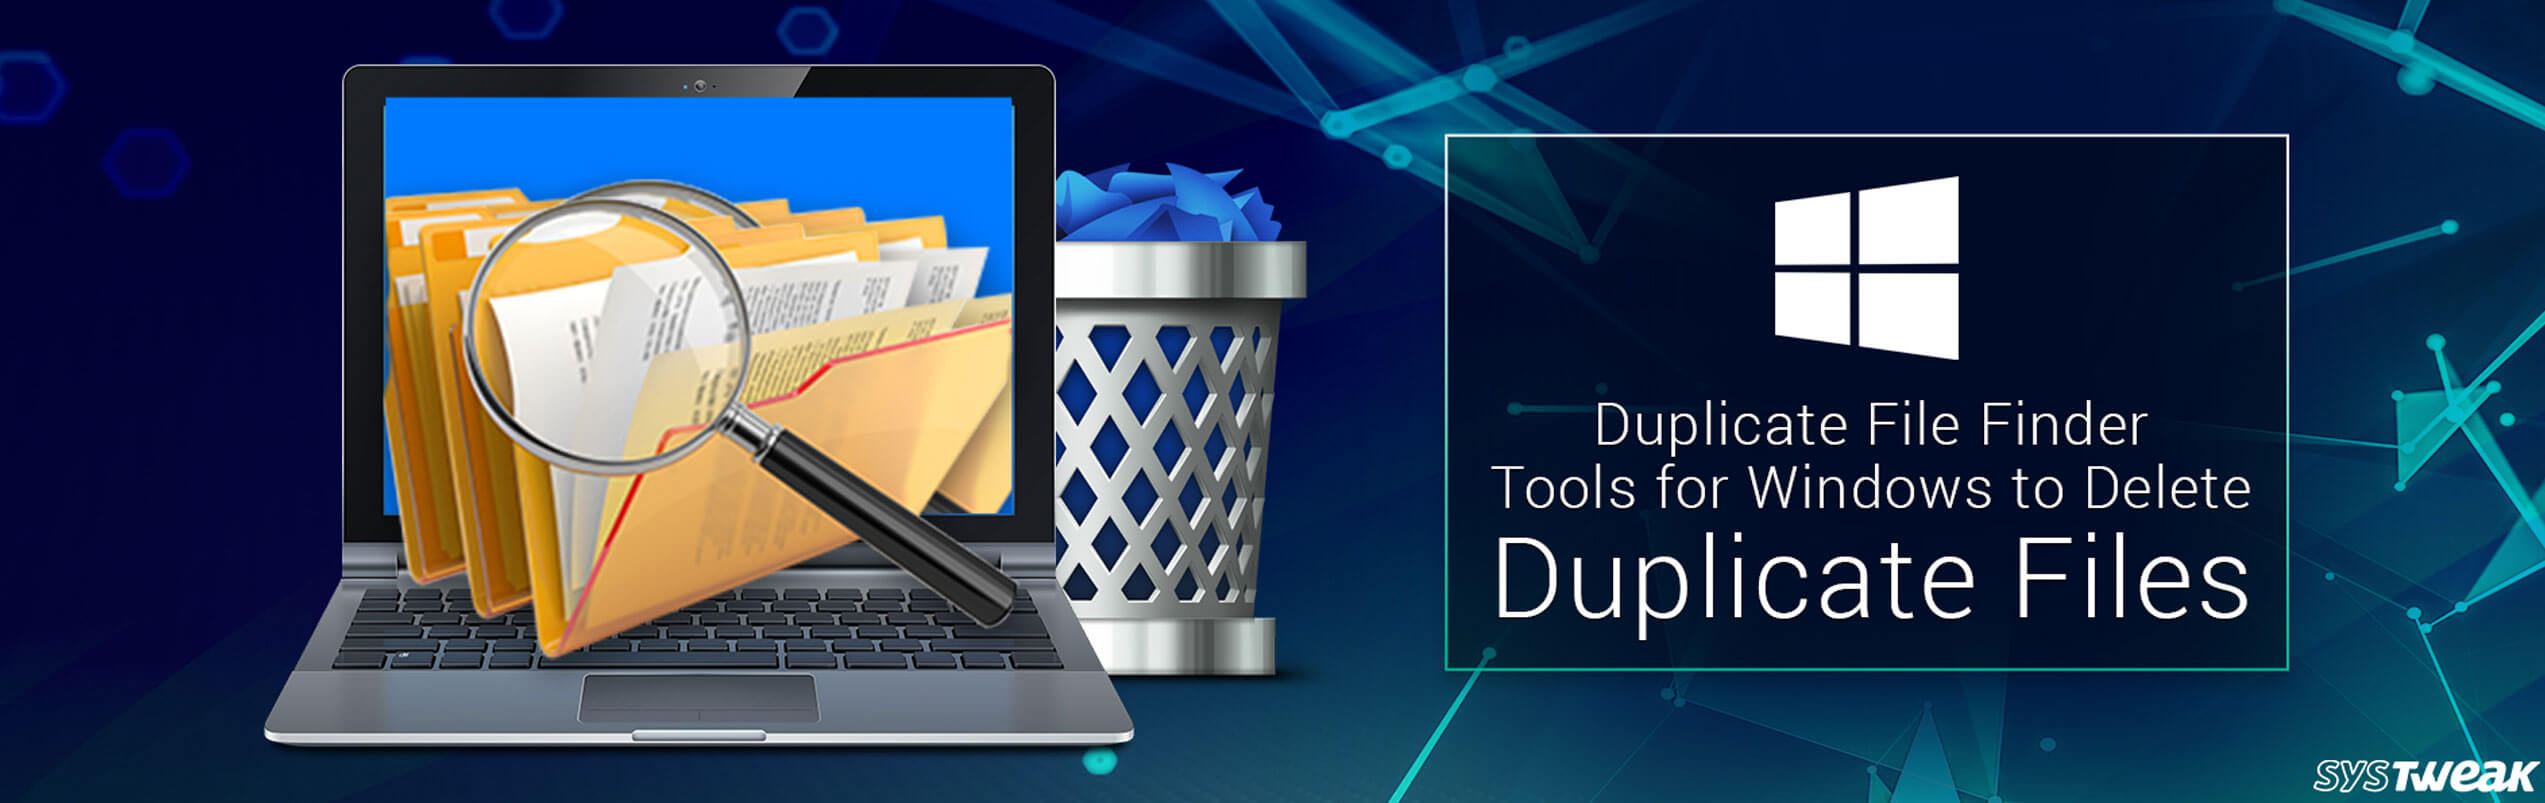 10 Best Duplicate File Finder and Remover Software for Windows 10, 8, 7